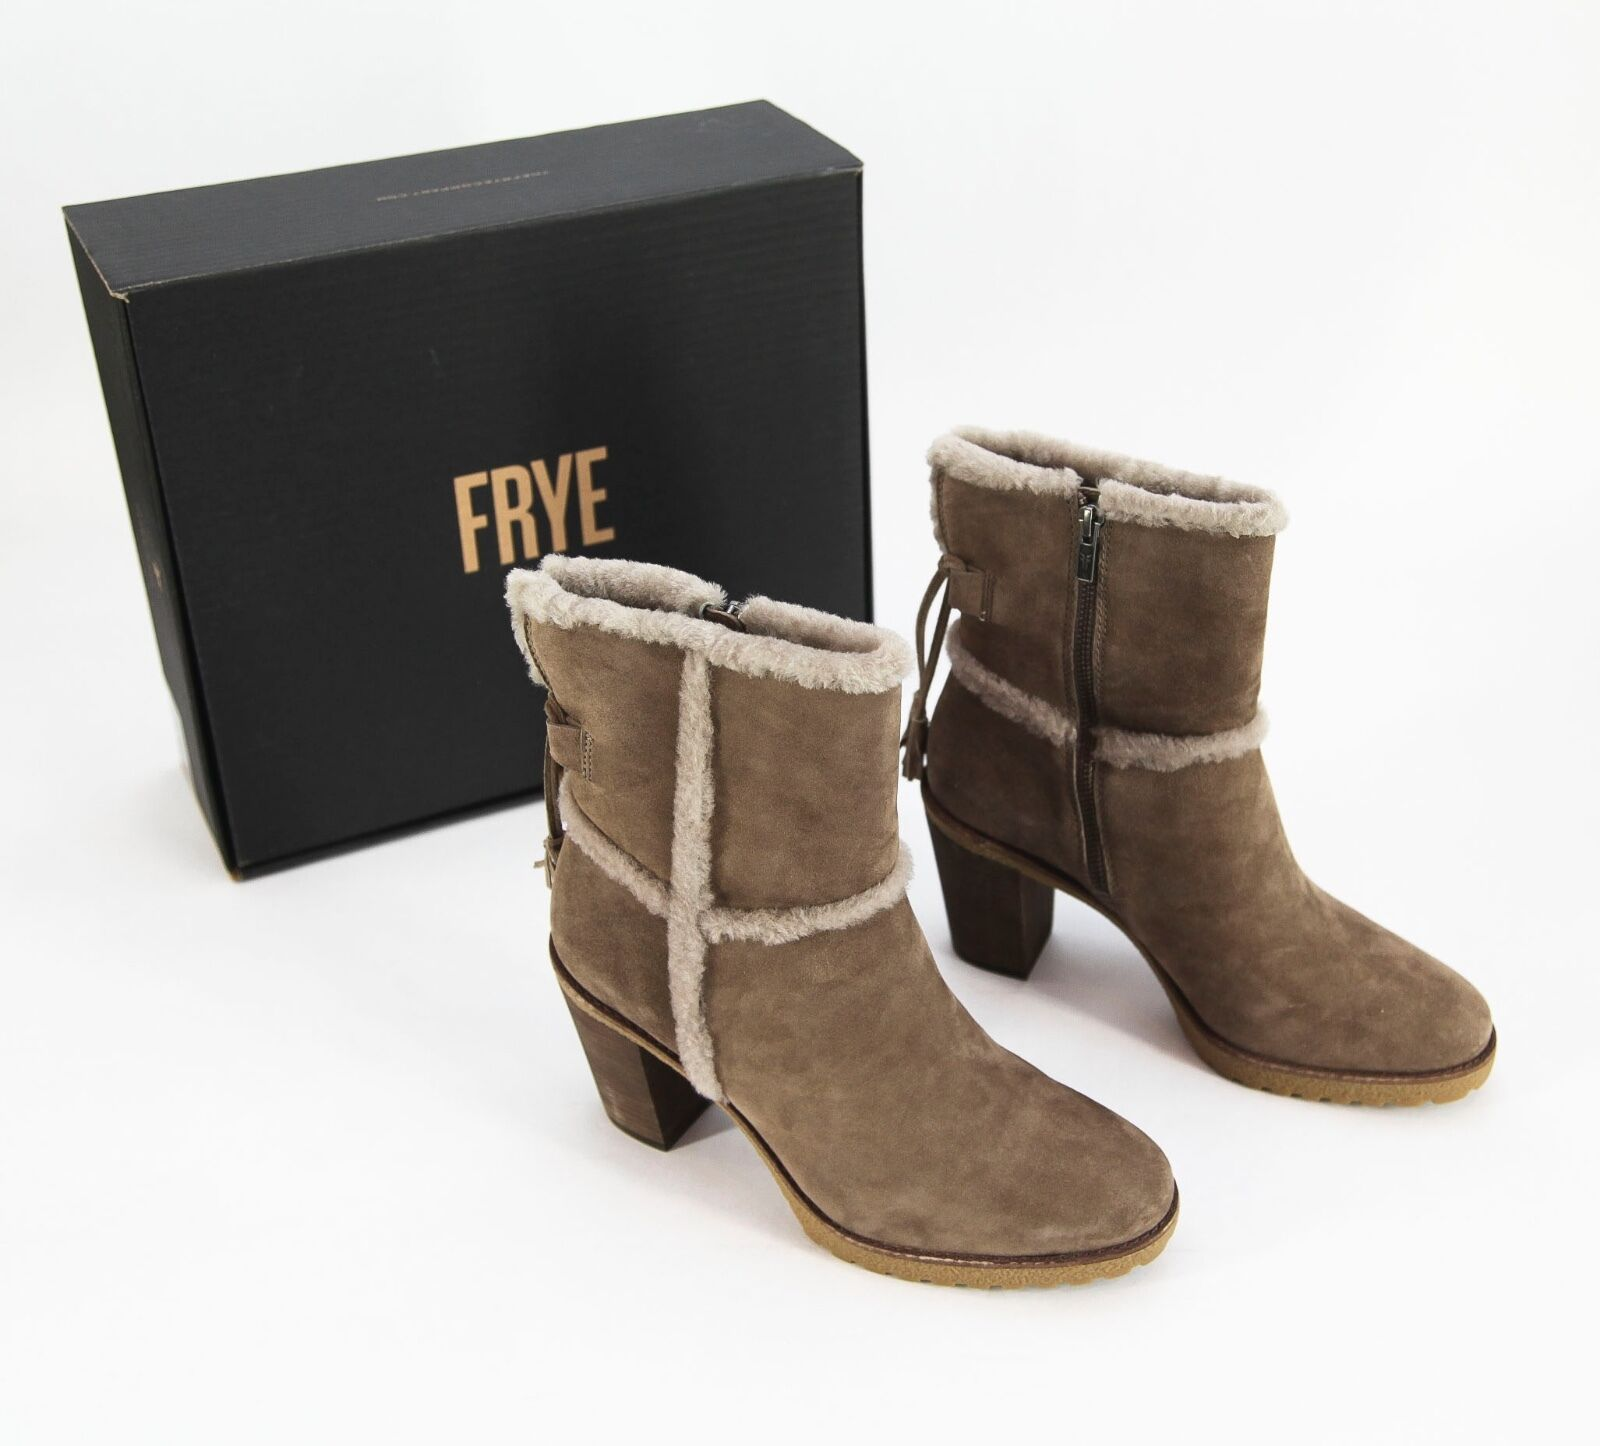 NEW  395 Frye 'Jen' Shearling Short Lamb Leather and Fur Ankle démarrage Taille 10M